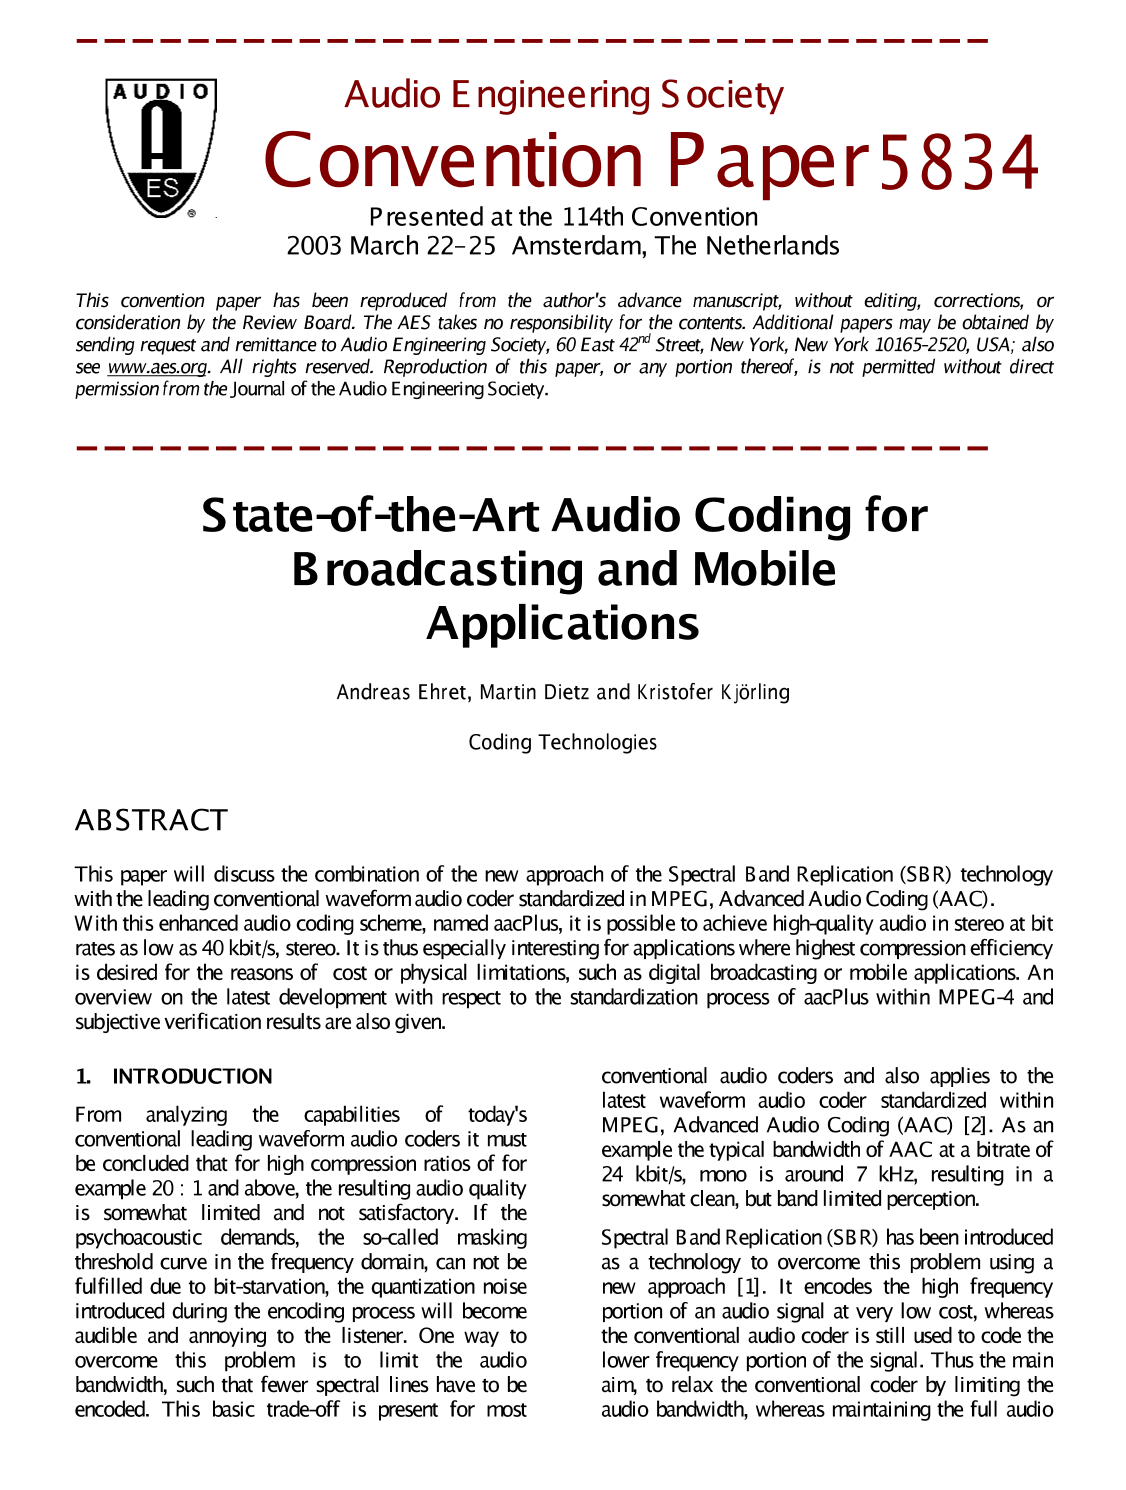 e library state of the art audio coding for broadcasting and  e library state of the art audio coding for broadcasting and mobile applications